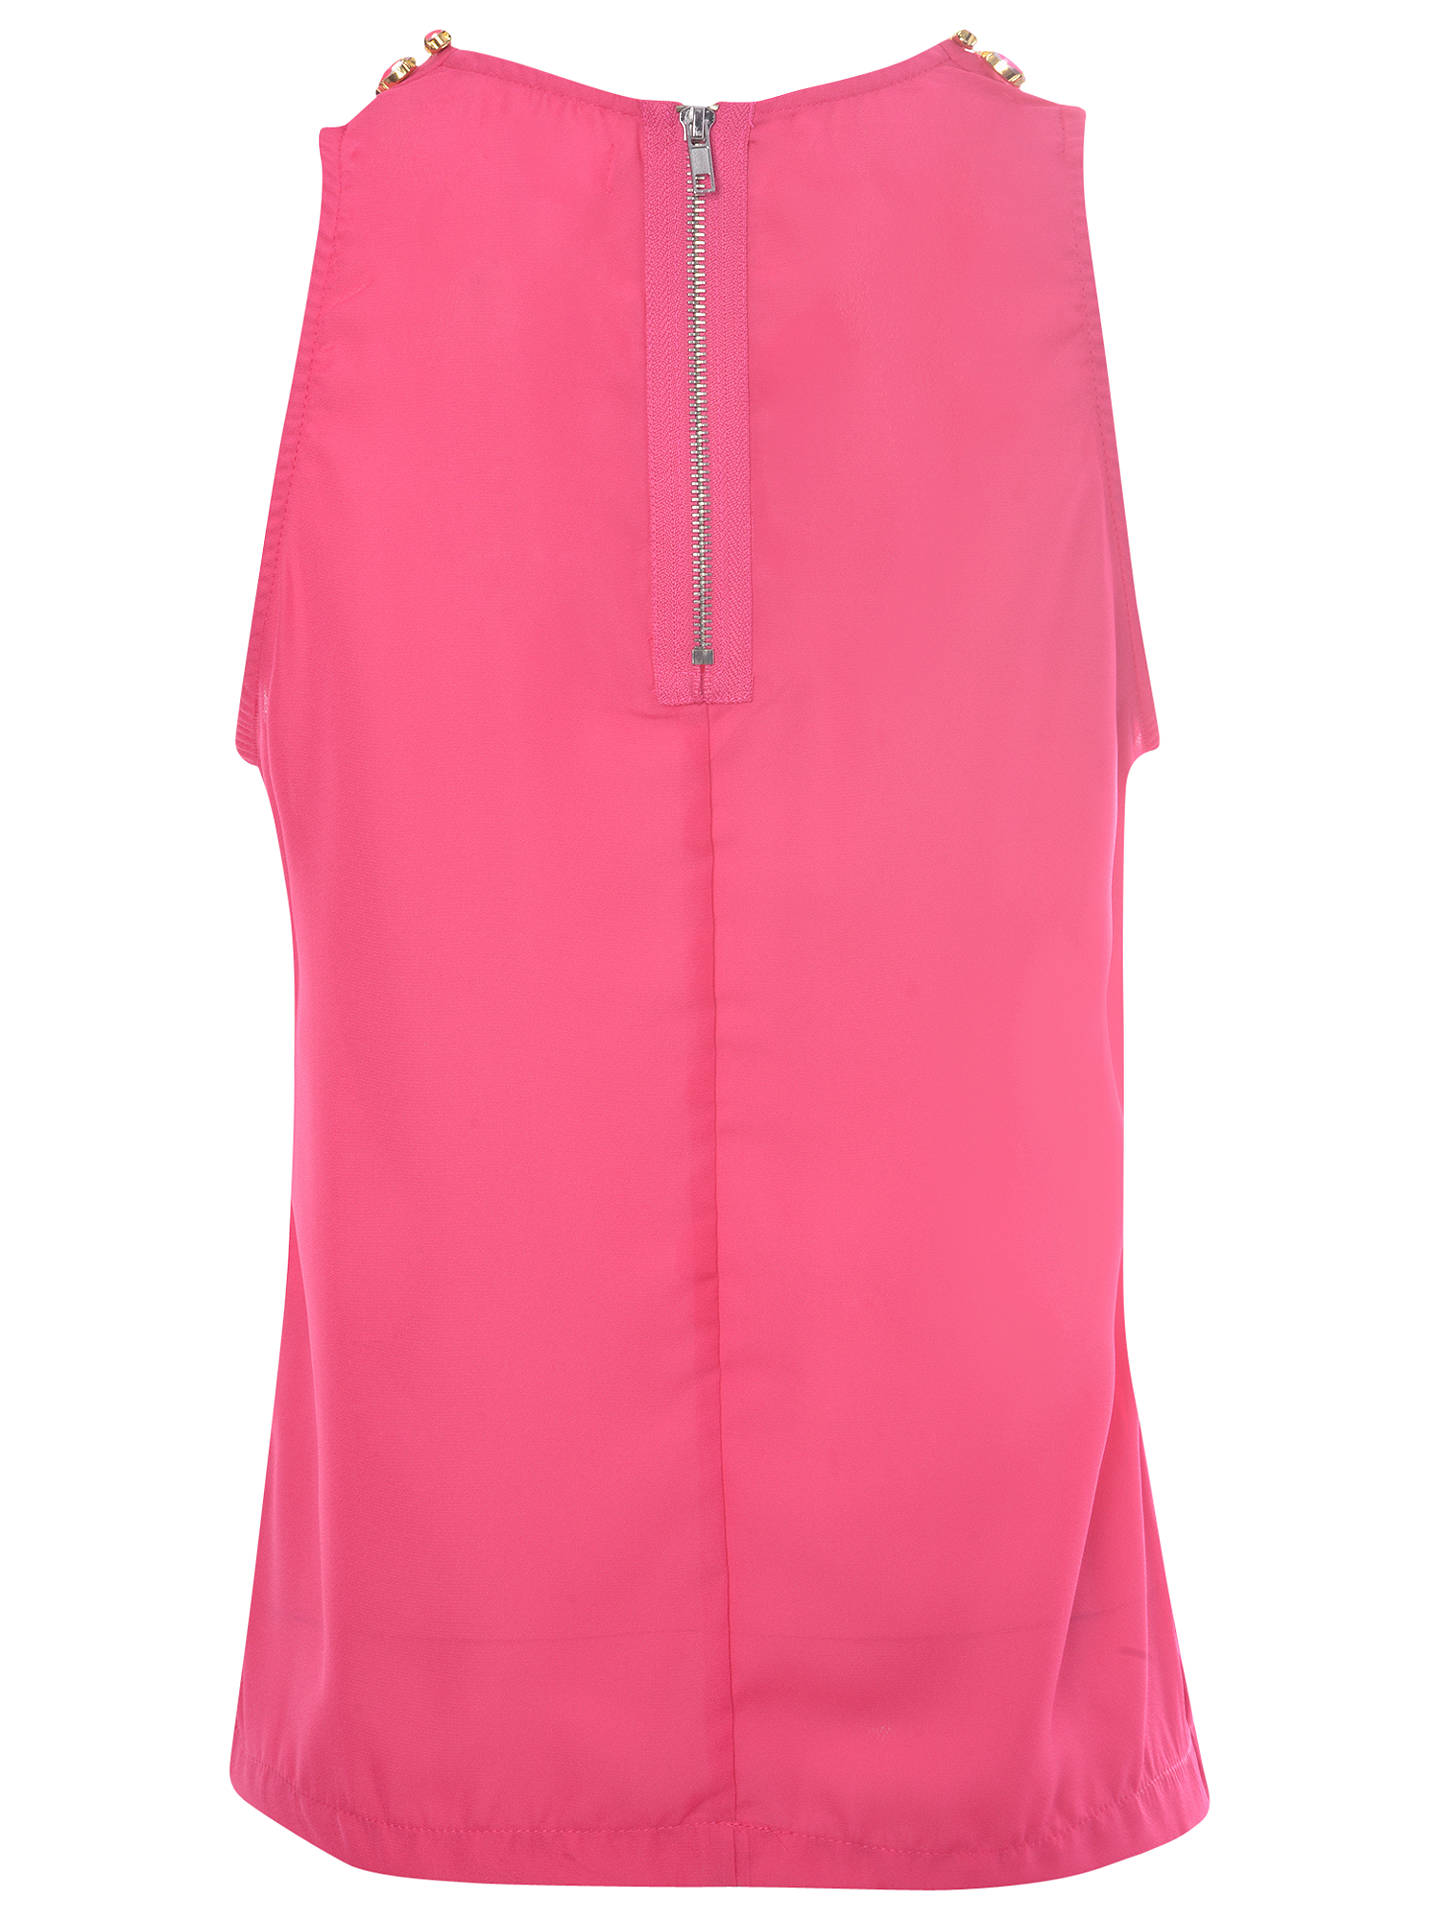 Buy True Decadence Jewel Collar Blouse, Hot Pink, 8 Online at johnlewis.com